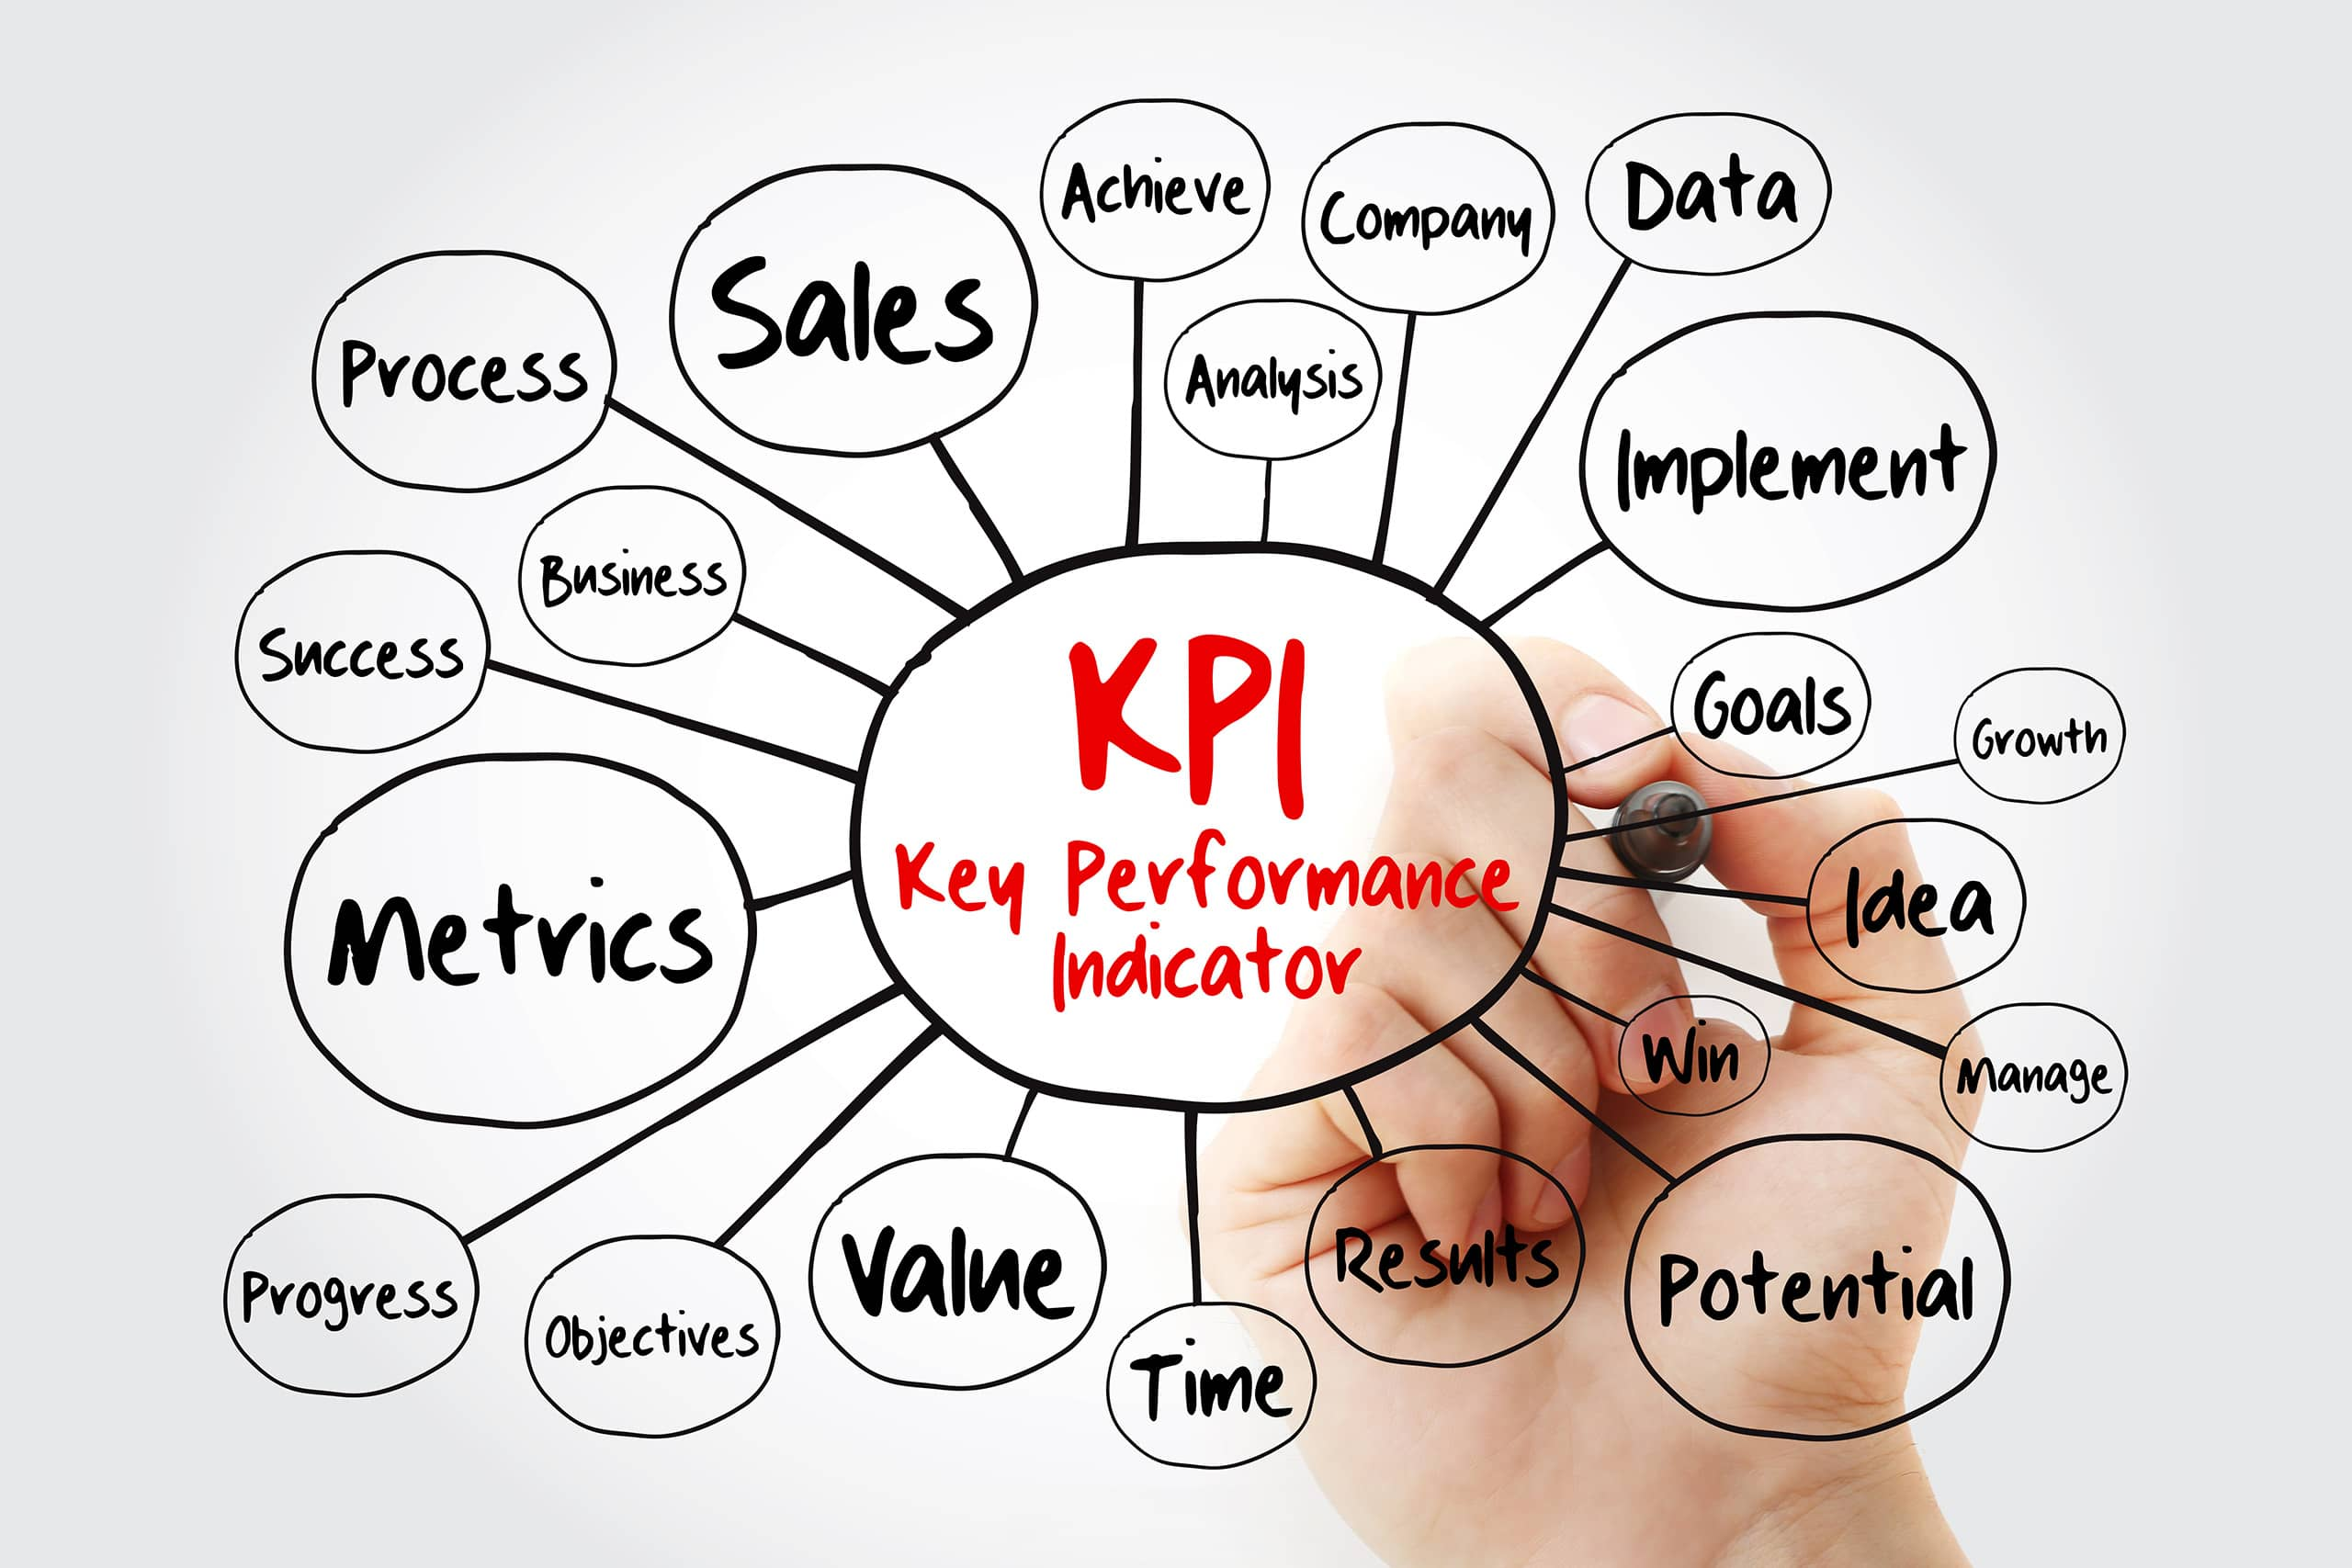 Spider chart of KPIs drawn with marker pen